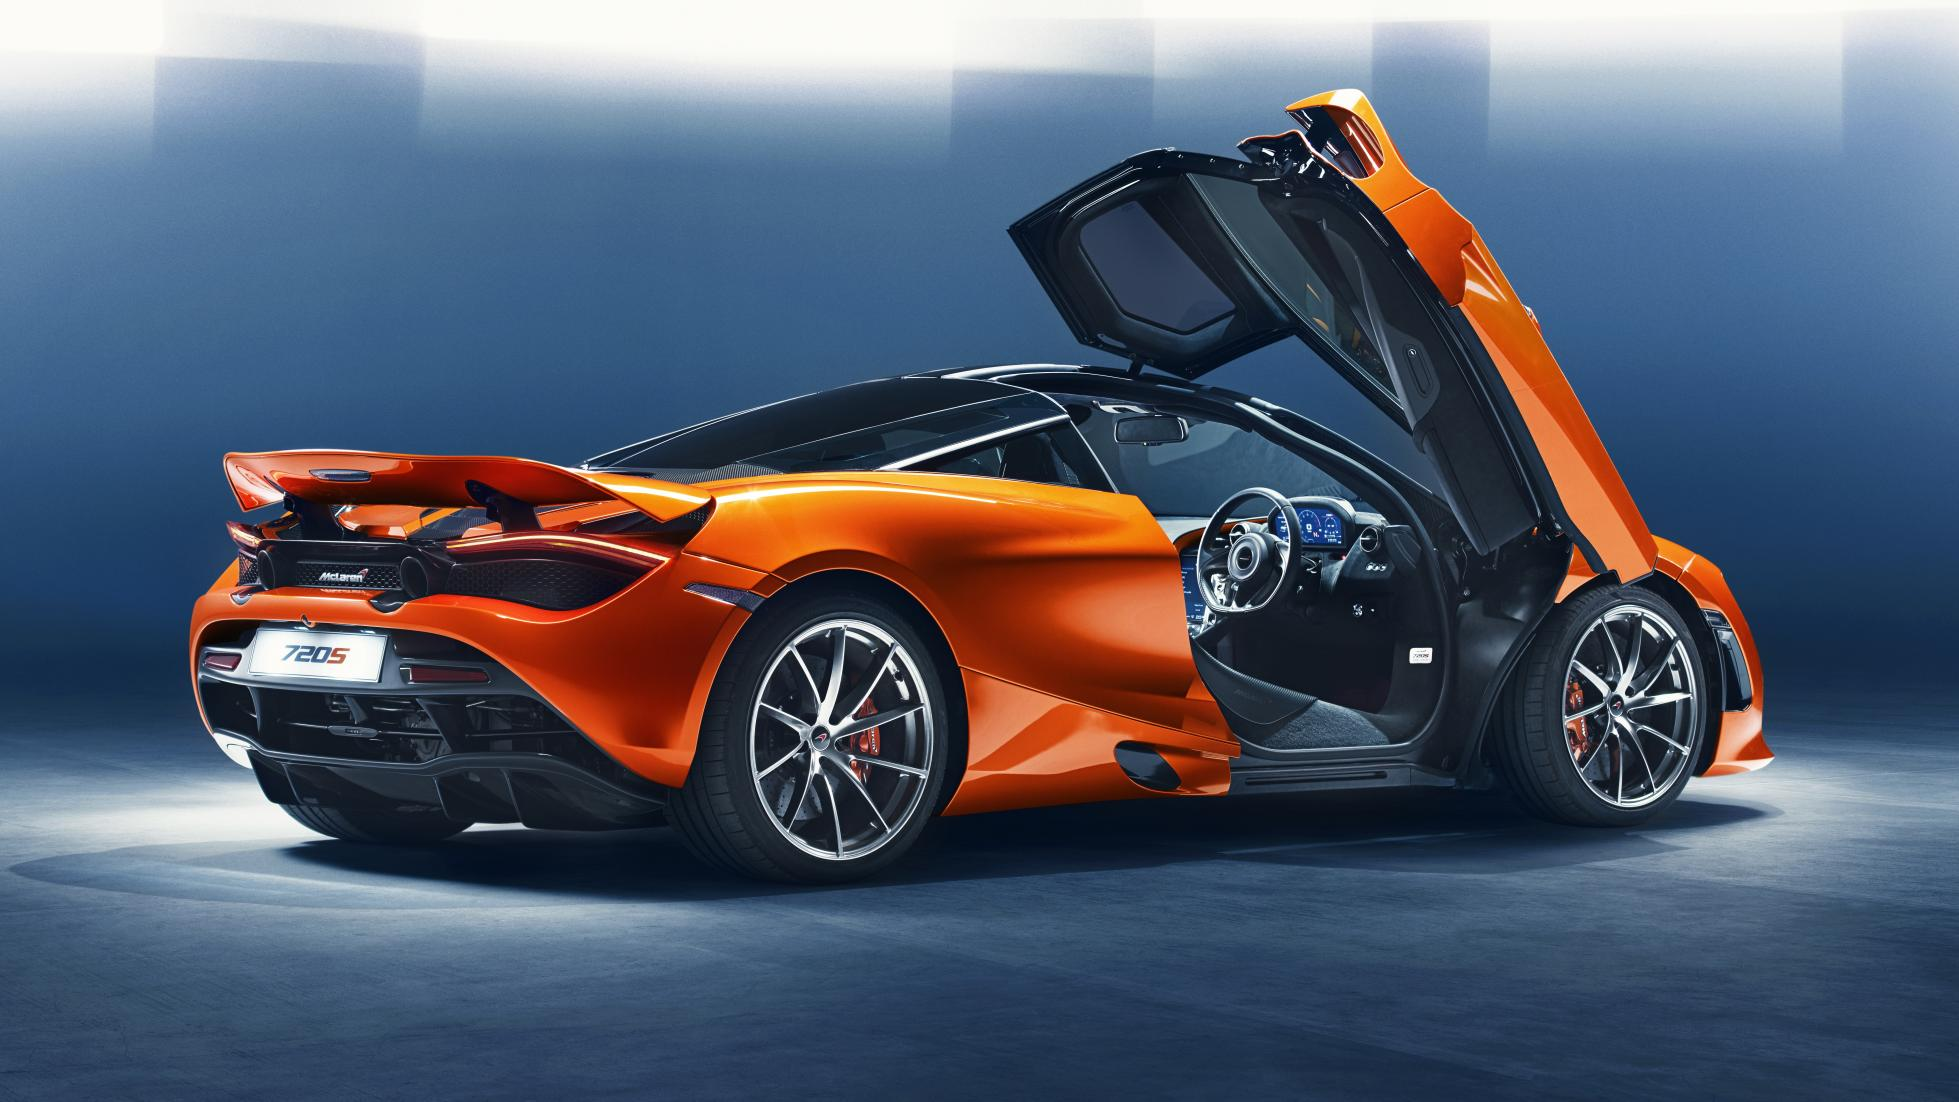 mclaren 720s the new beast in town luxury cars. Black Bedroom Furniture Sets. Home Design Ideas